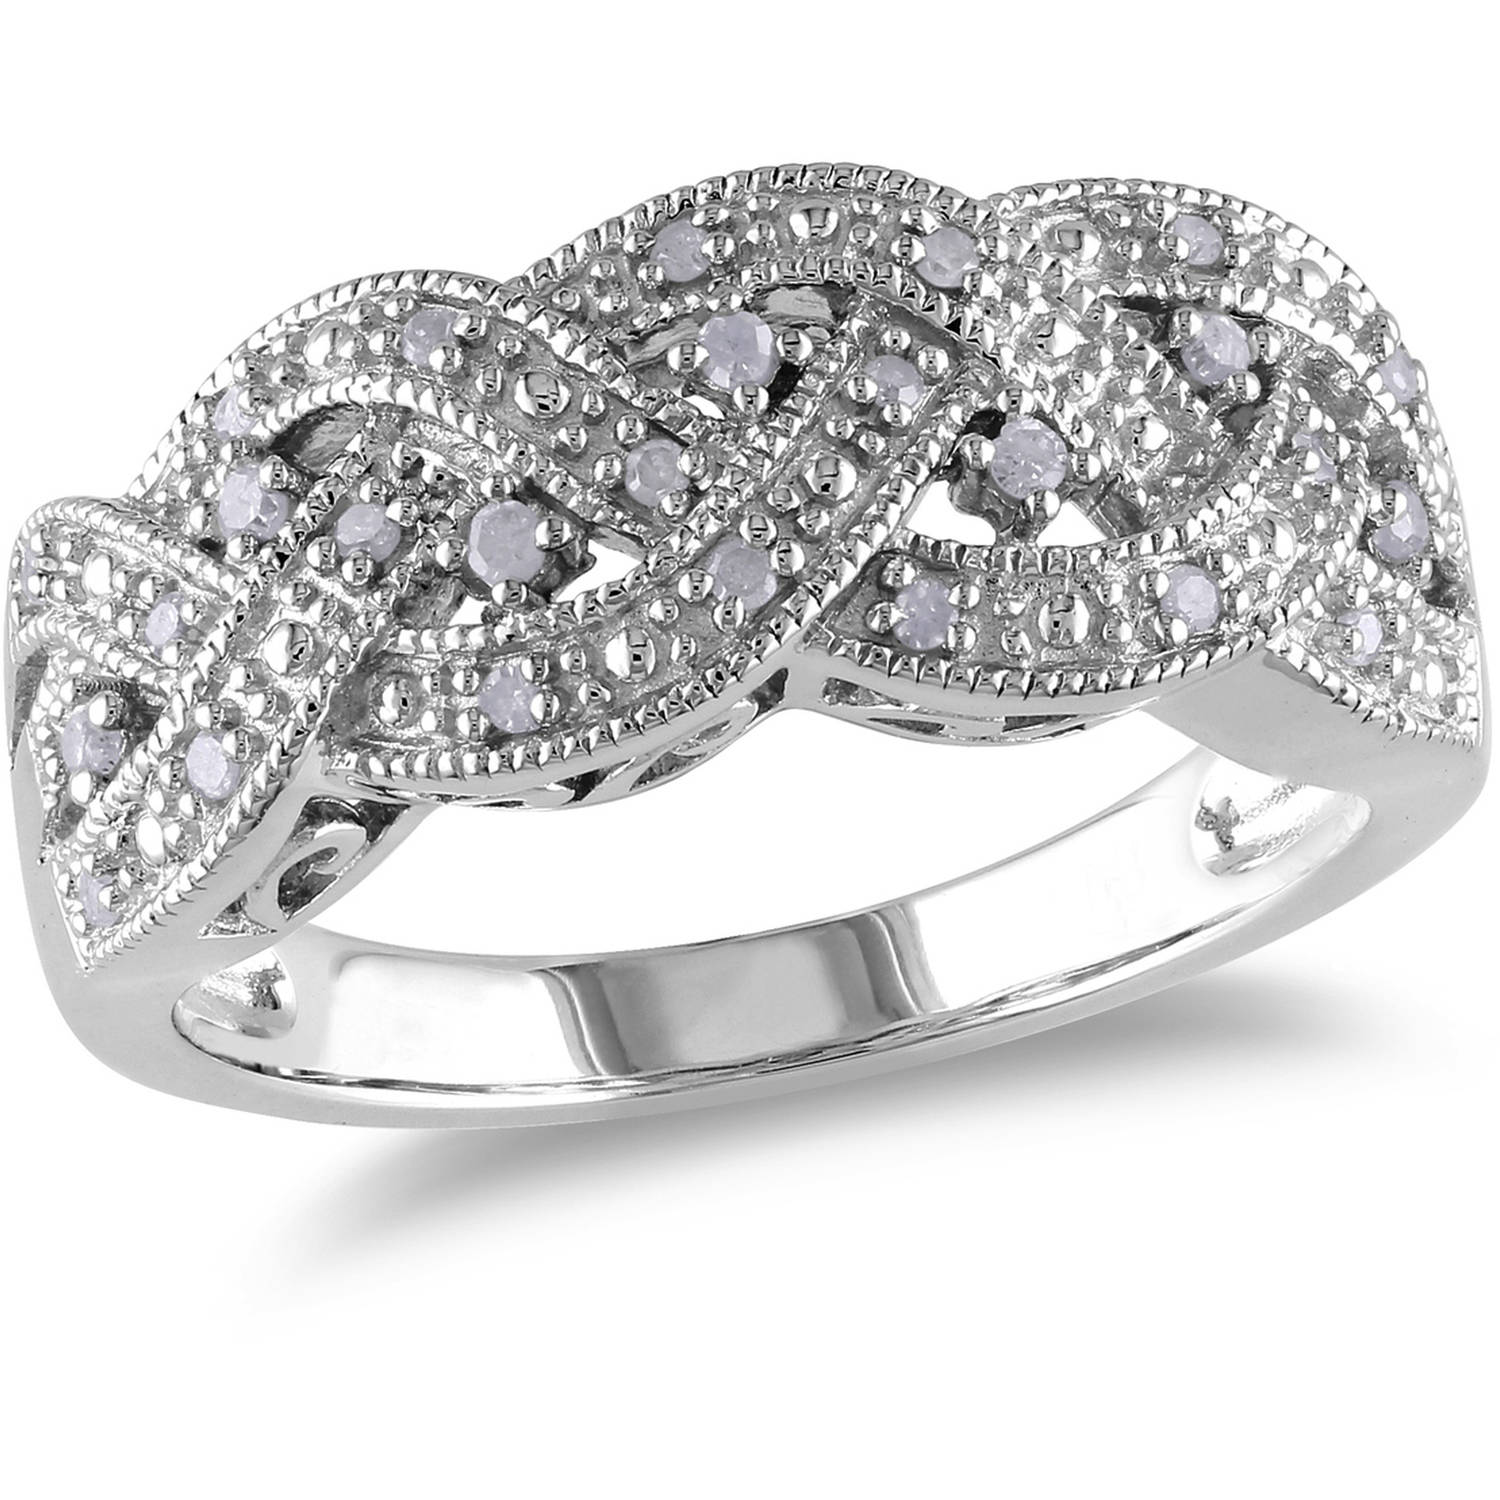 ring rings carat engagement canada silver miabella w t sterling created g infinity sapphire diamond white en accent walmart ip tgw and